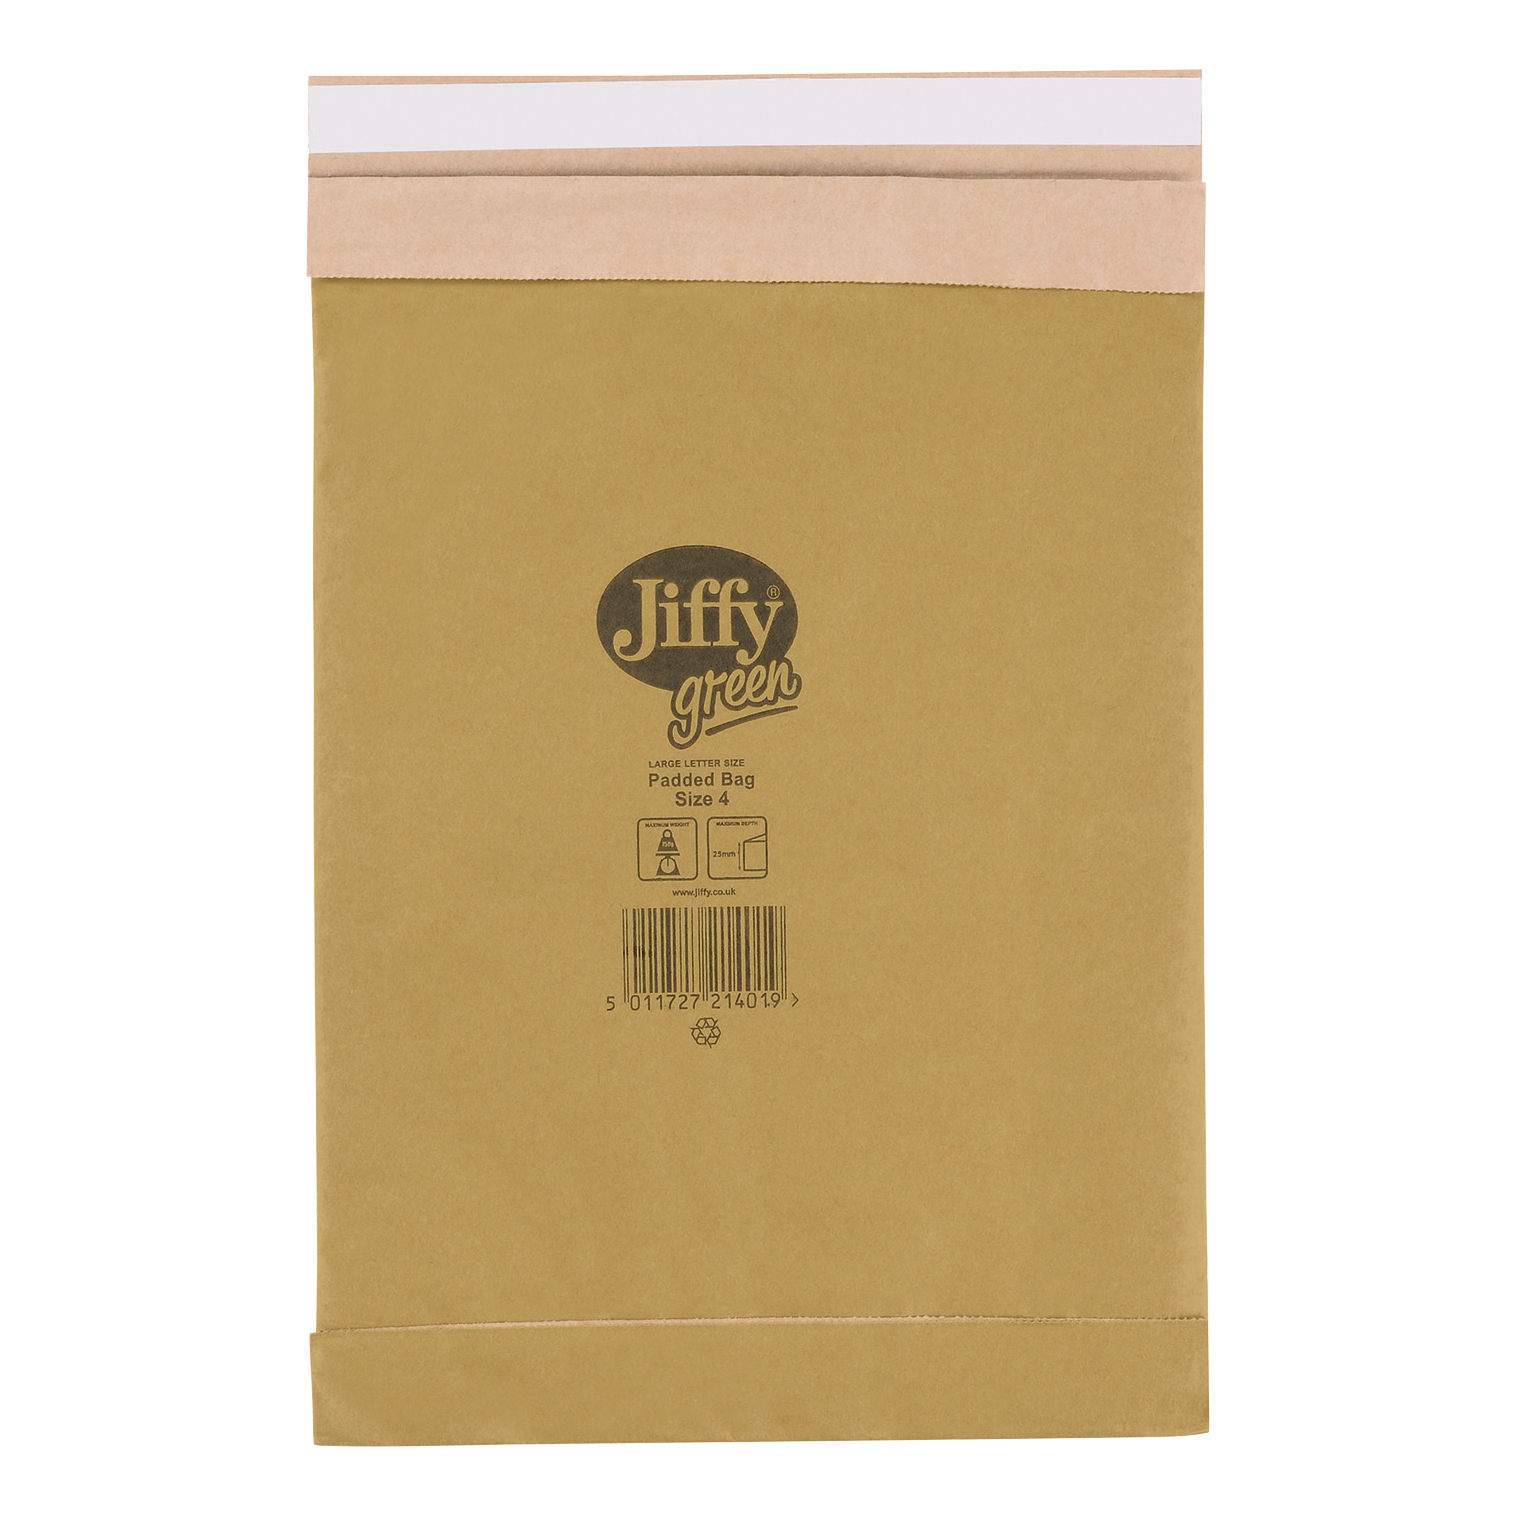 Padded Bags & Envelopes Jiffy Padded Bag Envelopes Size 4 Peel and Seal 225x343mm Brown Ref JPB-4 [Pack 100]